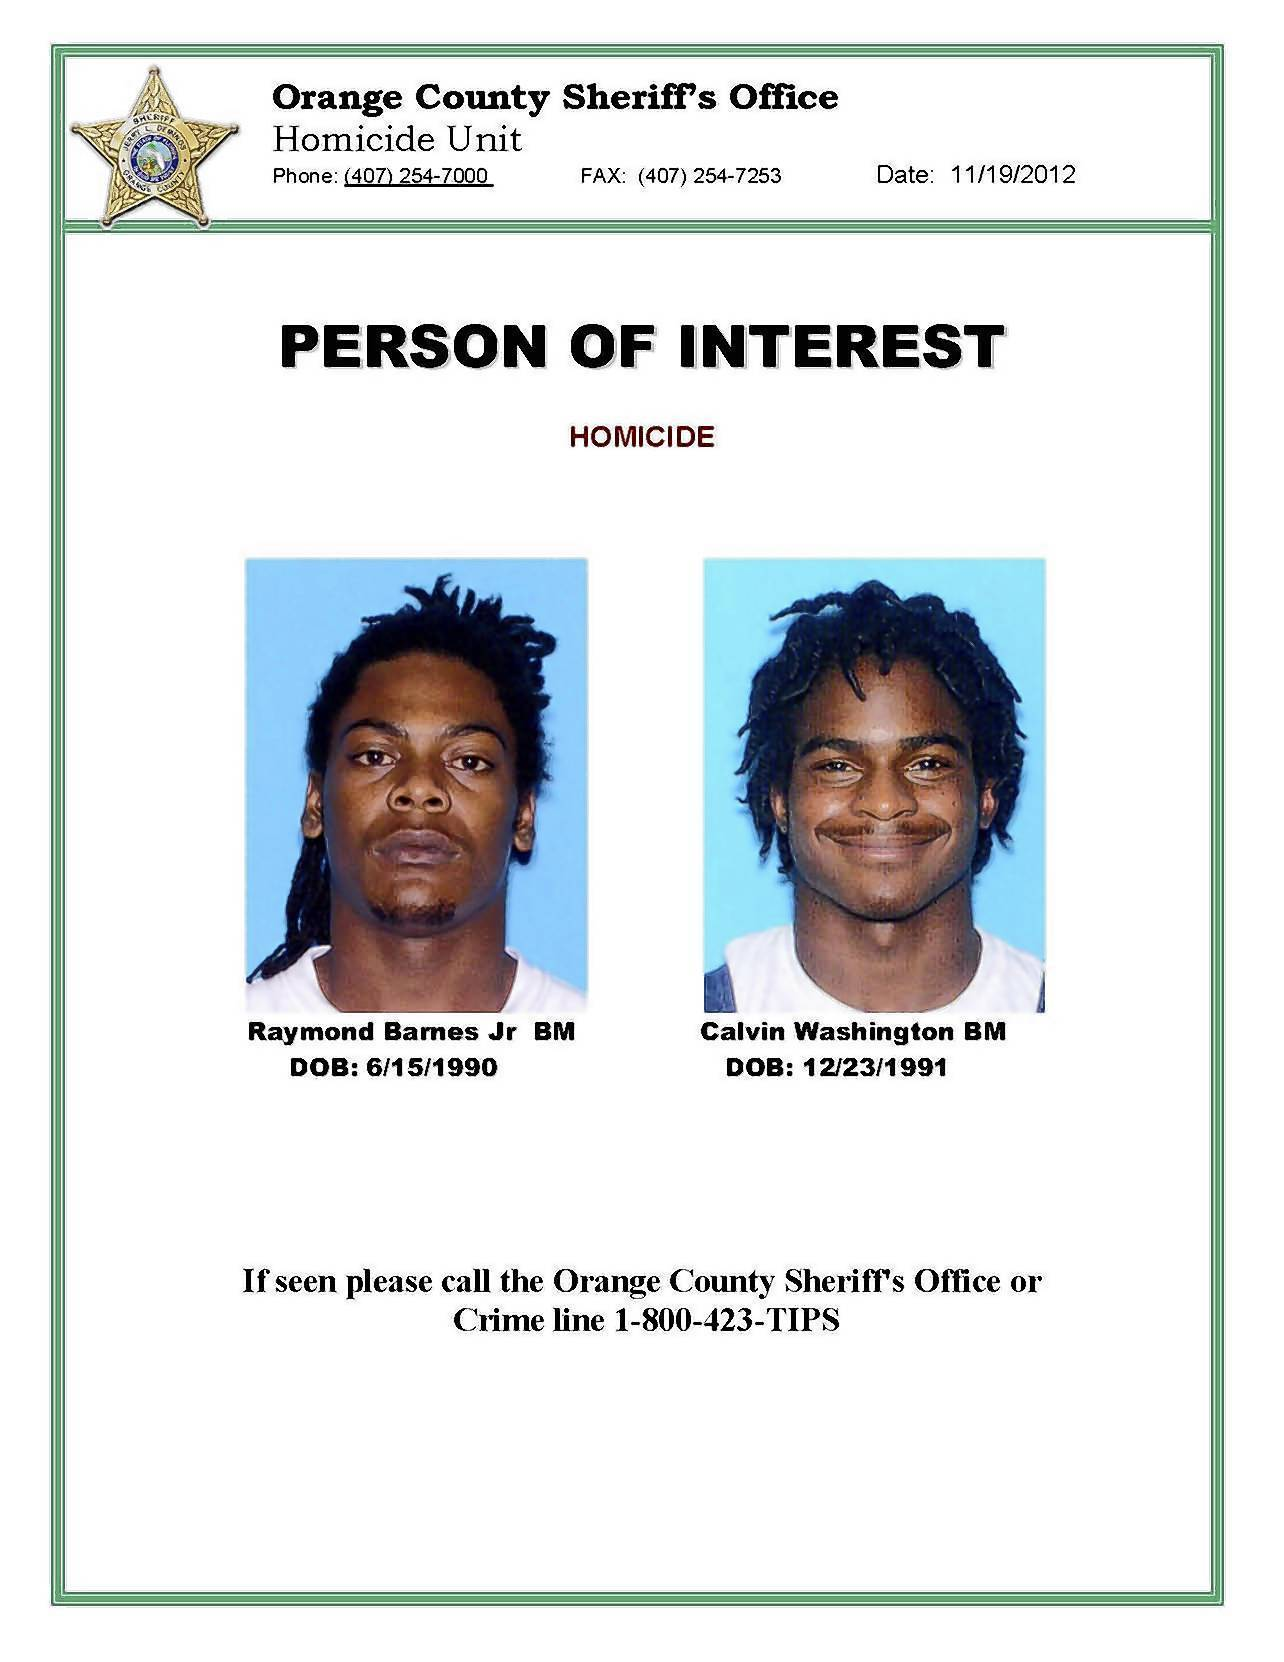 The Orange County Sheriff's Office wants to question these two men in the September China wok robbery and killing.